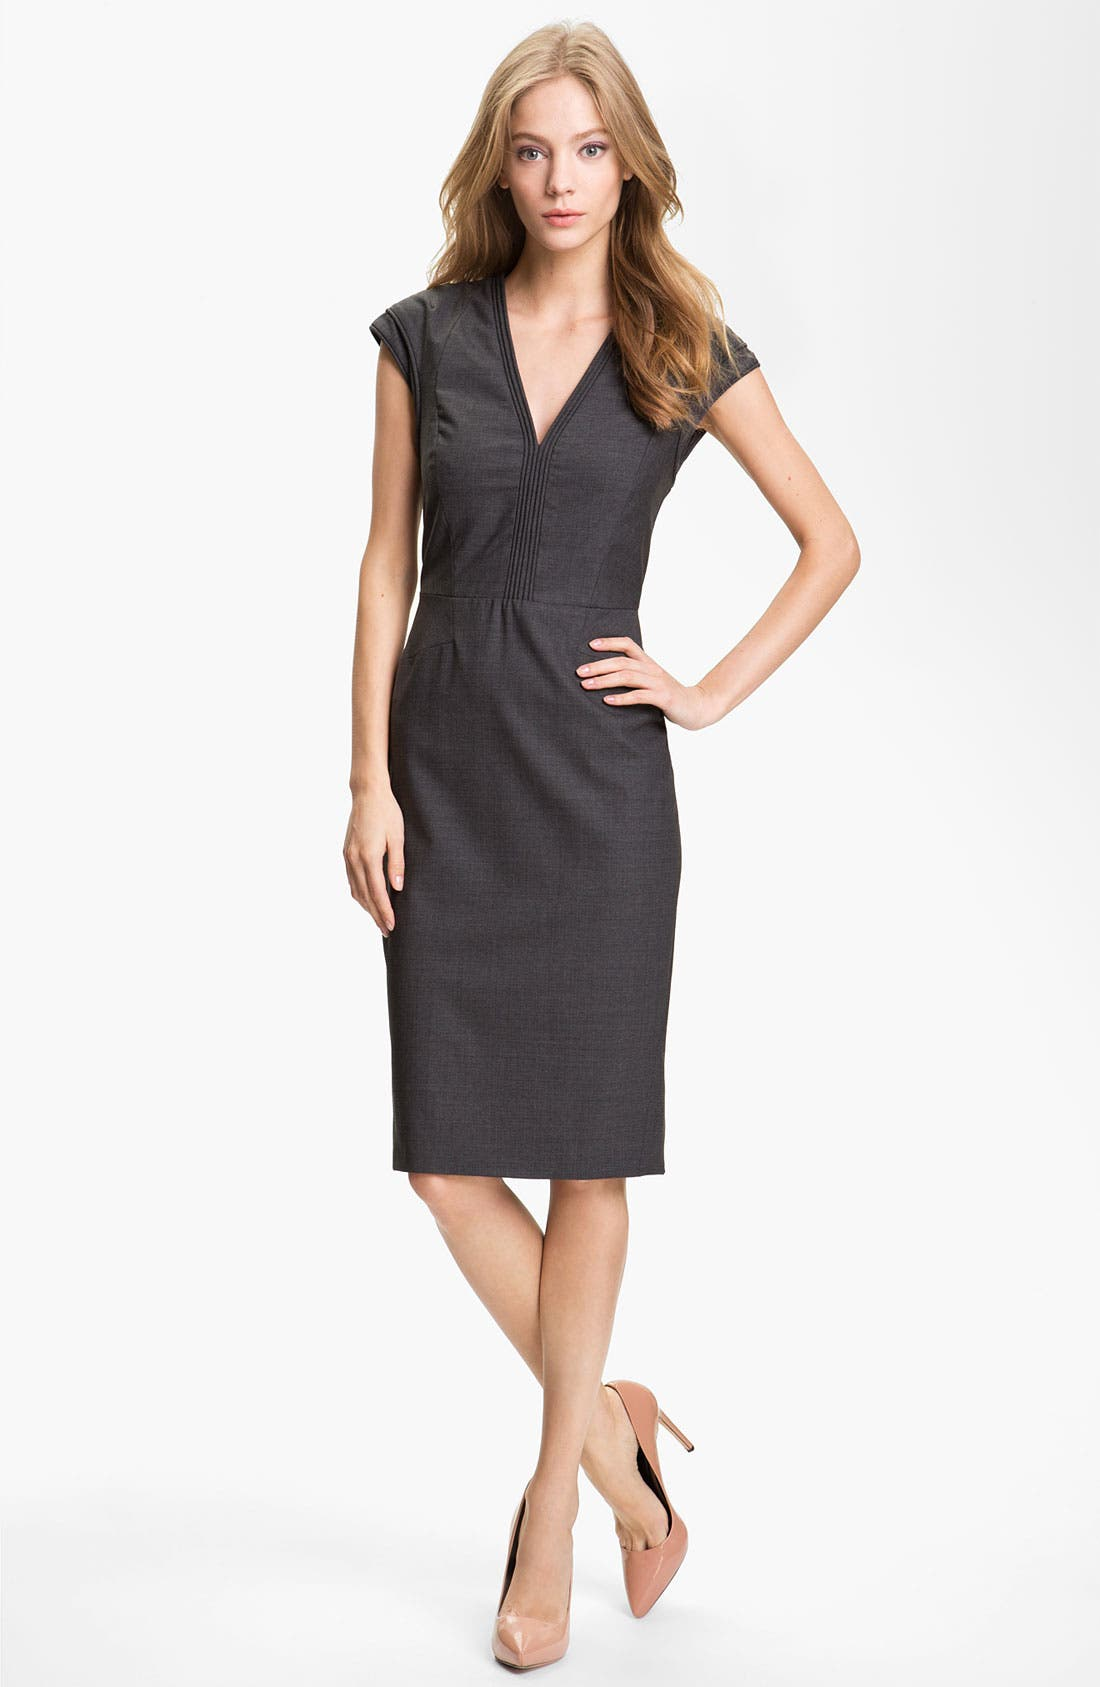 Alternate Image 1 Selected - Rachel Roy 'Cord' Tropical Wool Sheath Dress